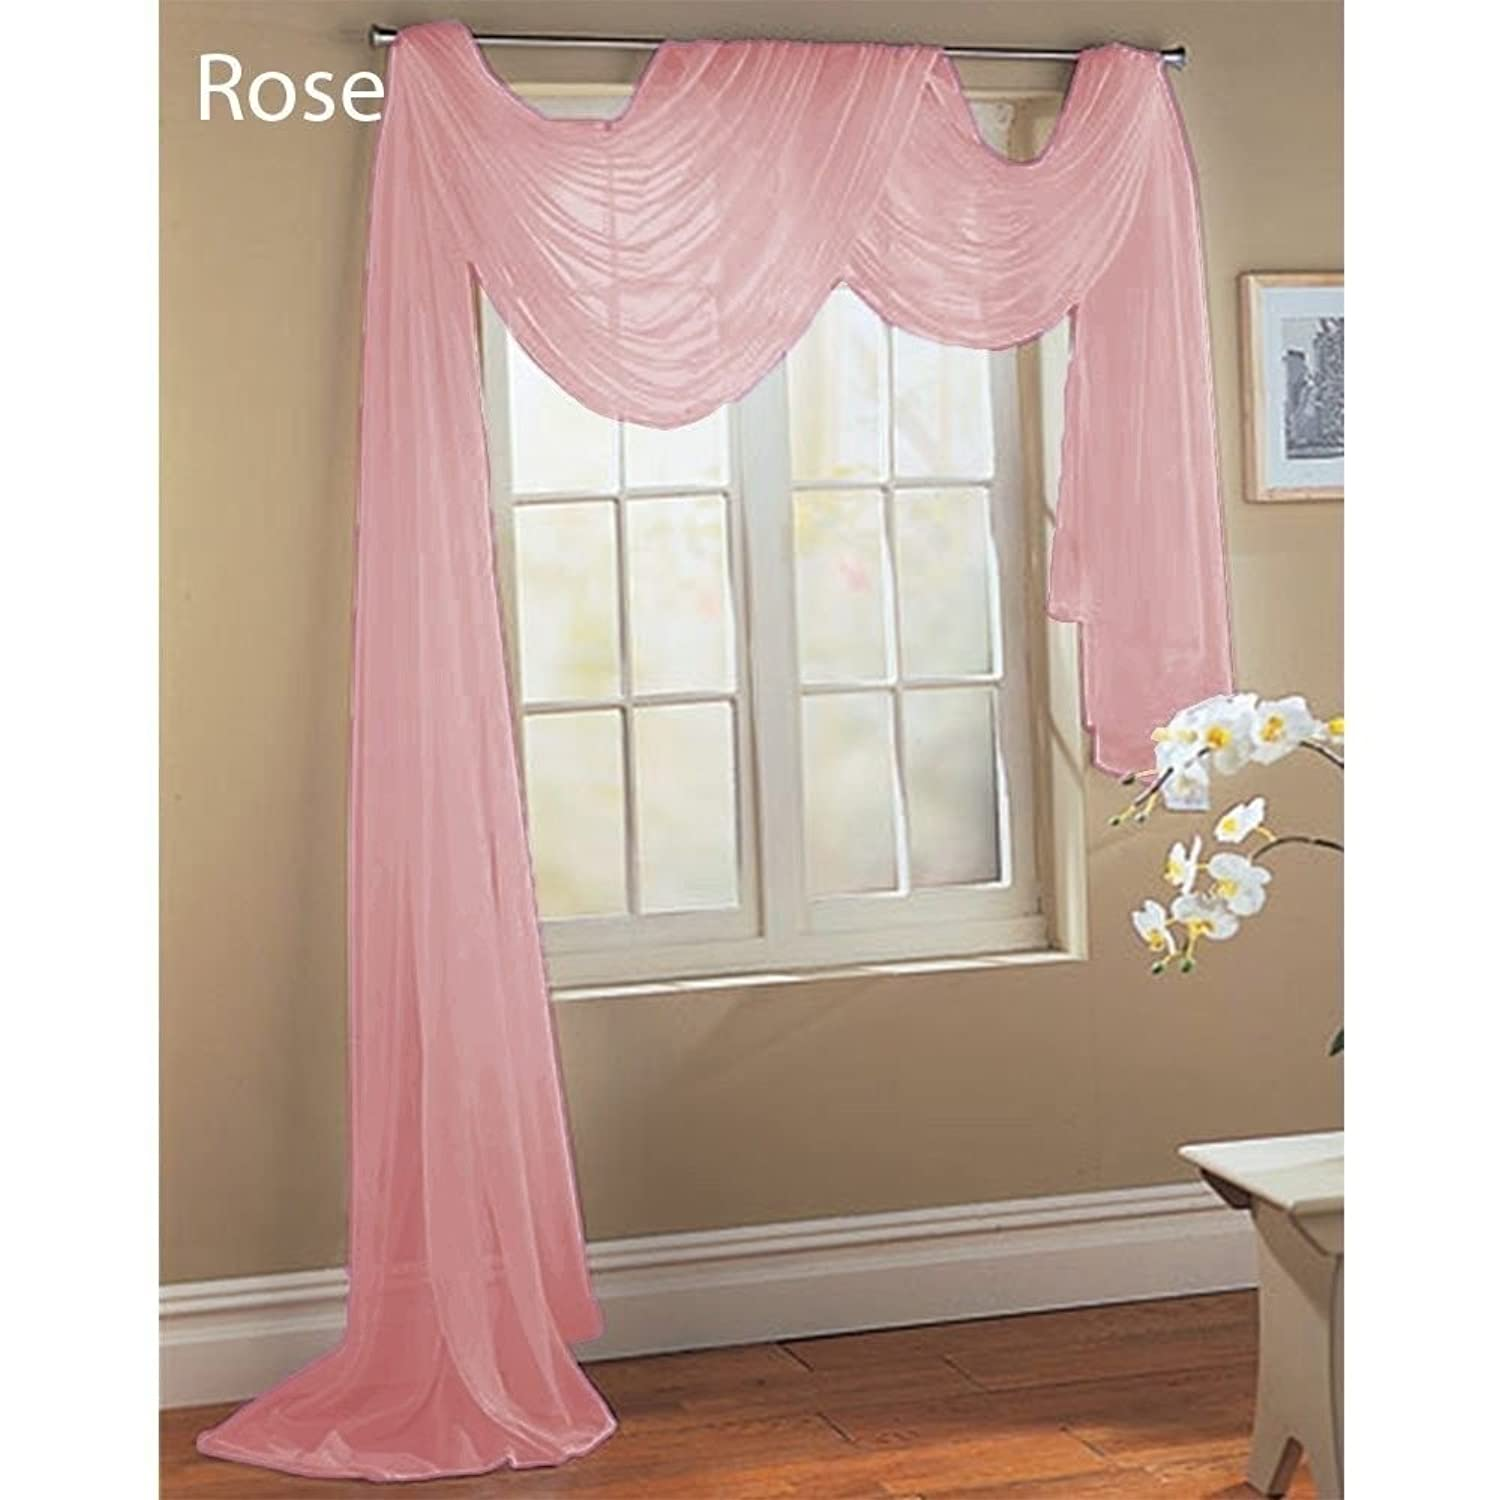 window valance pdx drapes curtain ellis jaden with tailored reviews treatments stripe